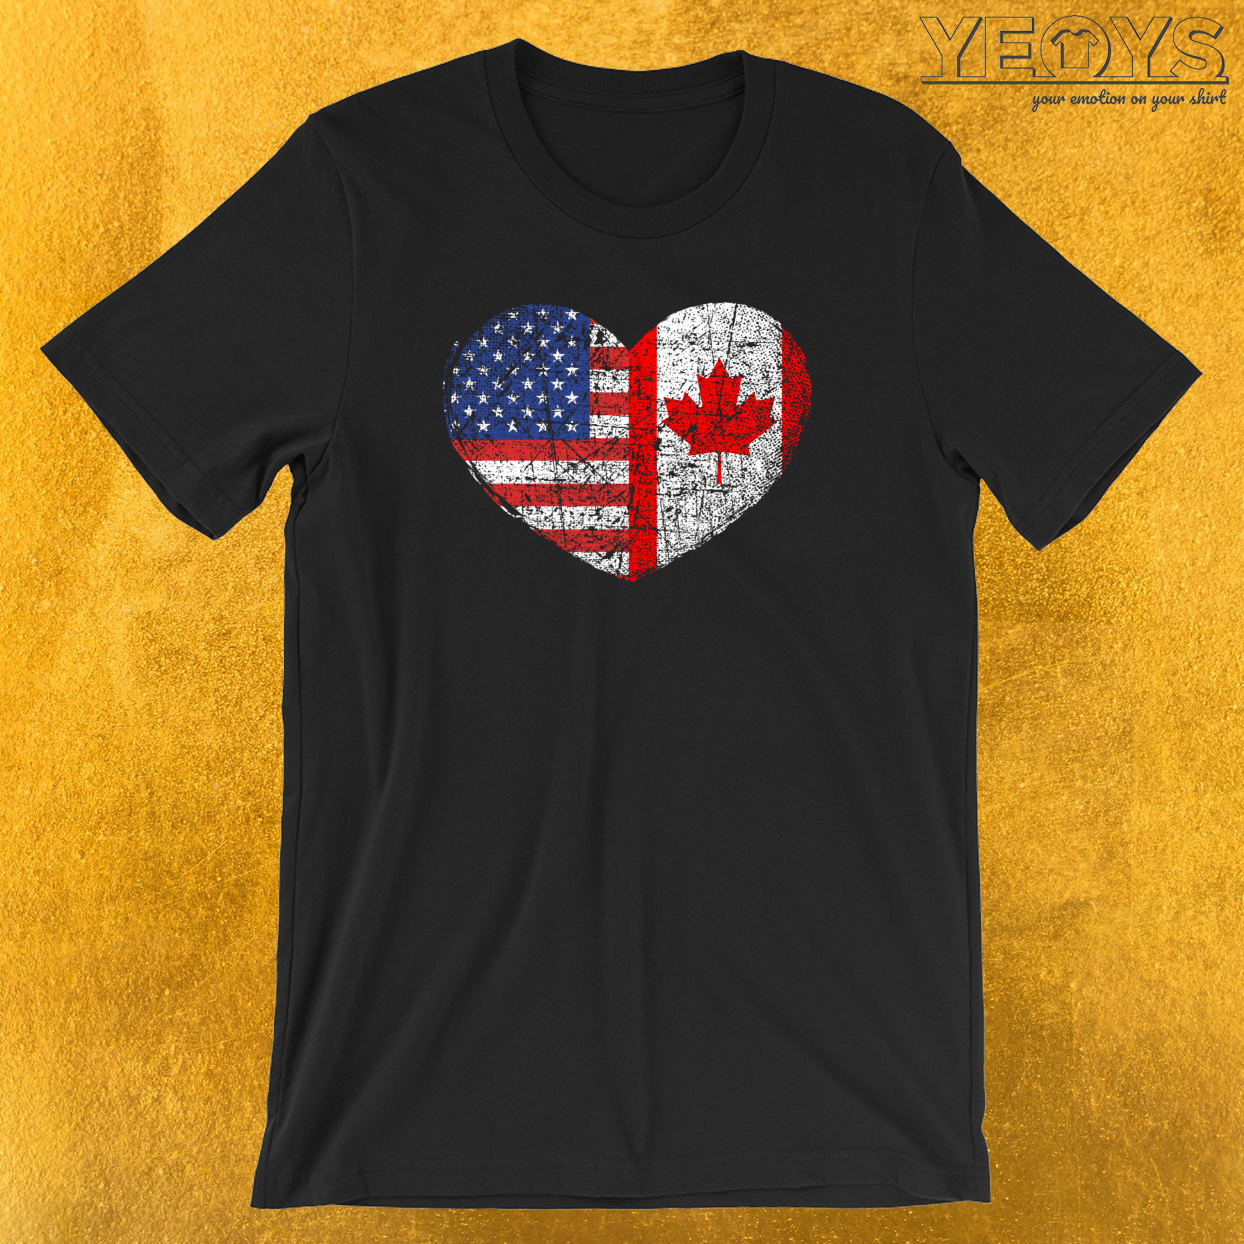 USA Canada Heart T-Shirt